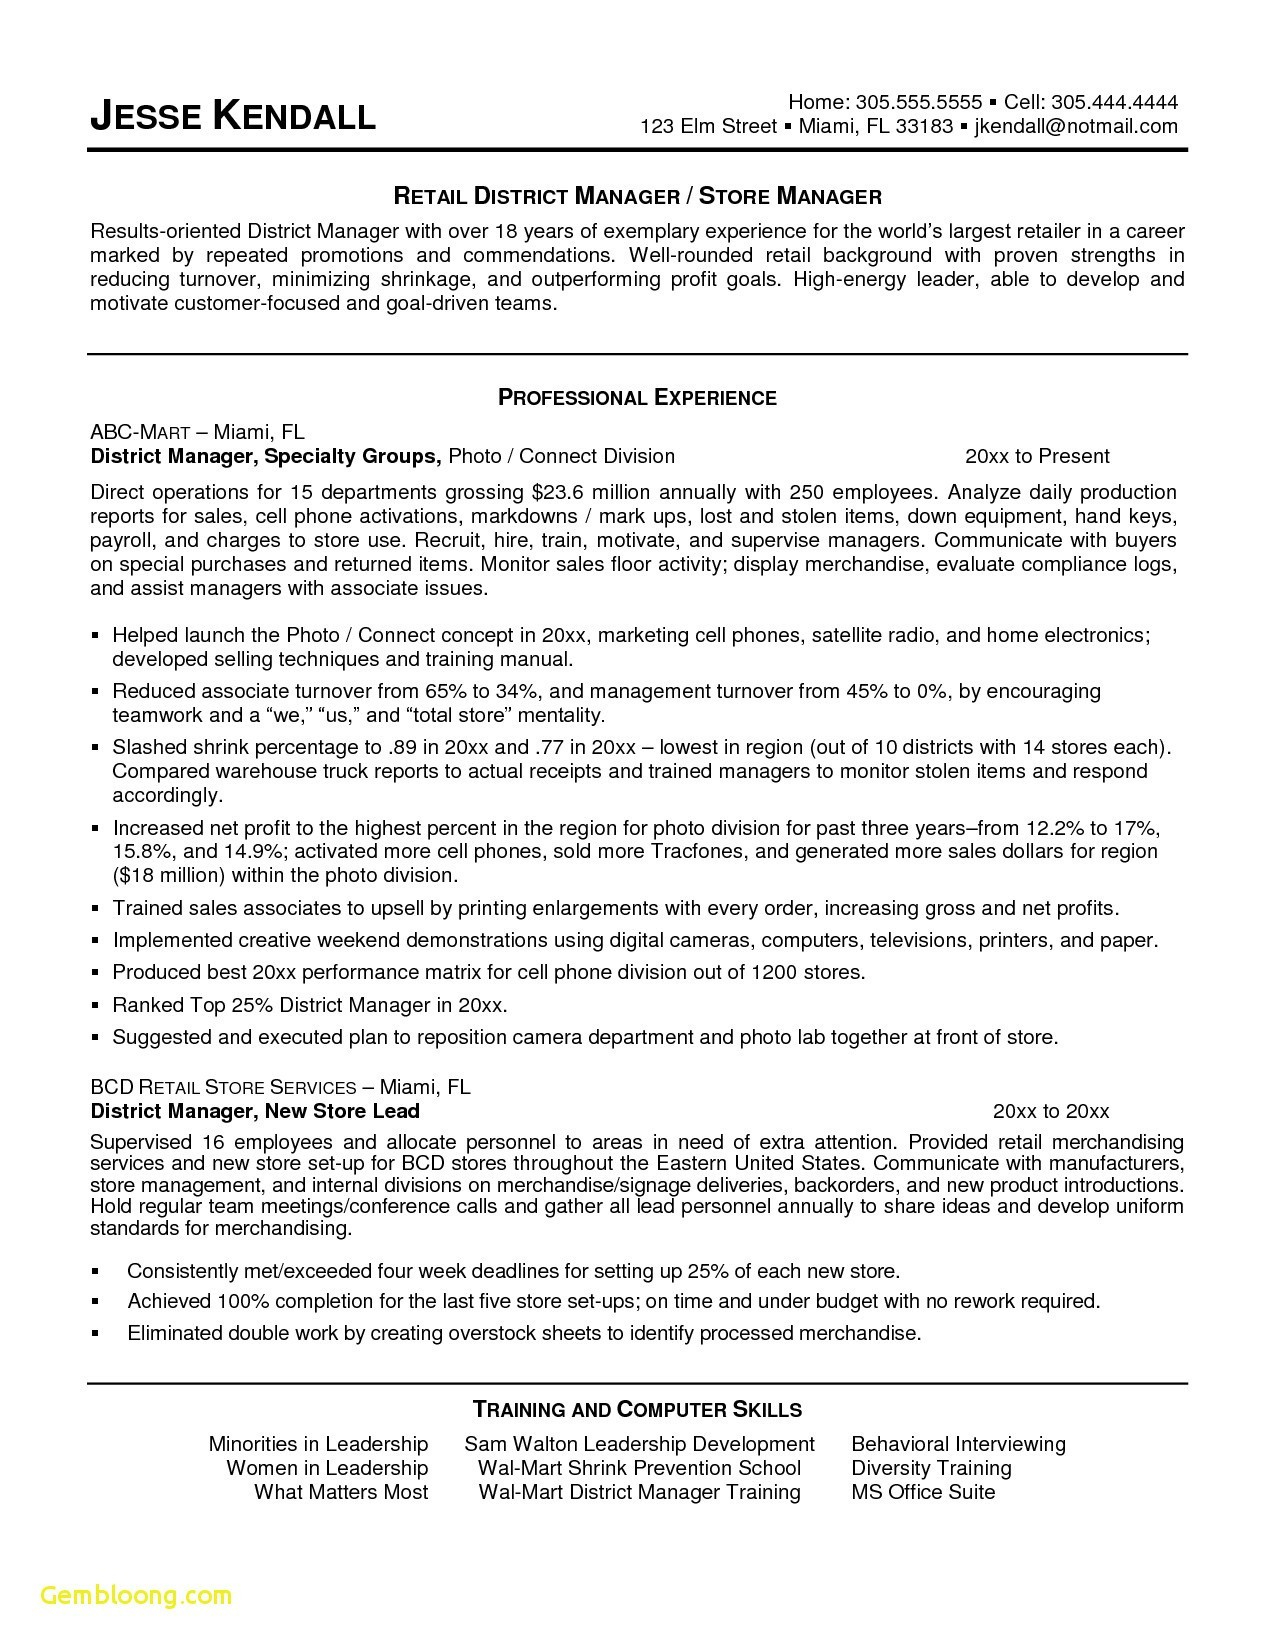 purchasing manager resume template Collection-Purchasing Manager Resume Beautiful Fresh Grapher Resume Sample Beautiful Resume Quotes 0d Bar Manager Purchasing 8-f